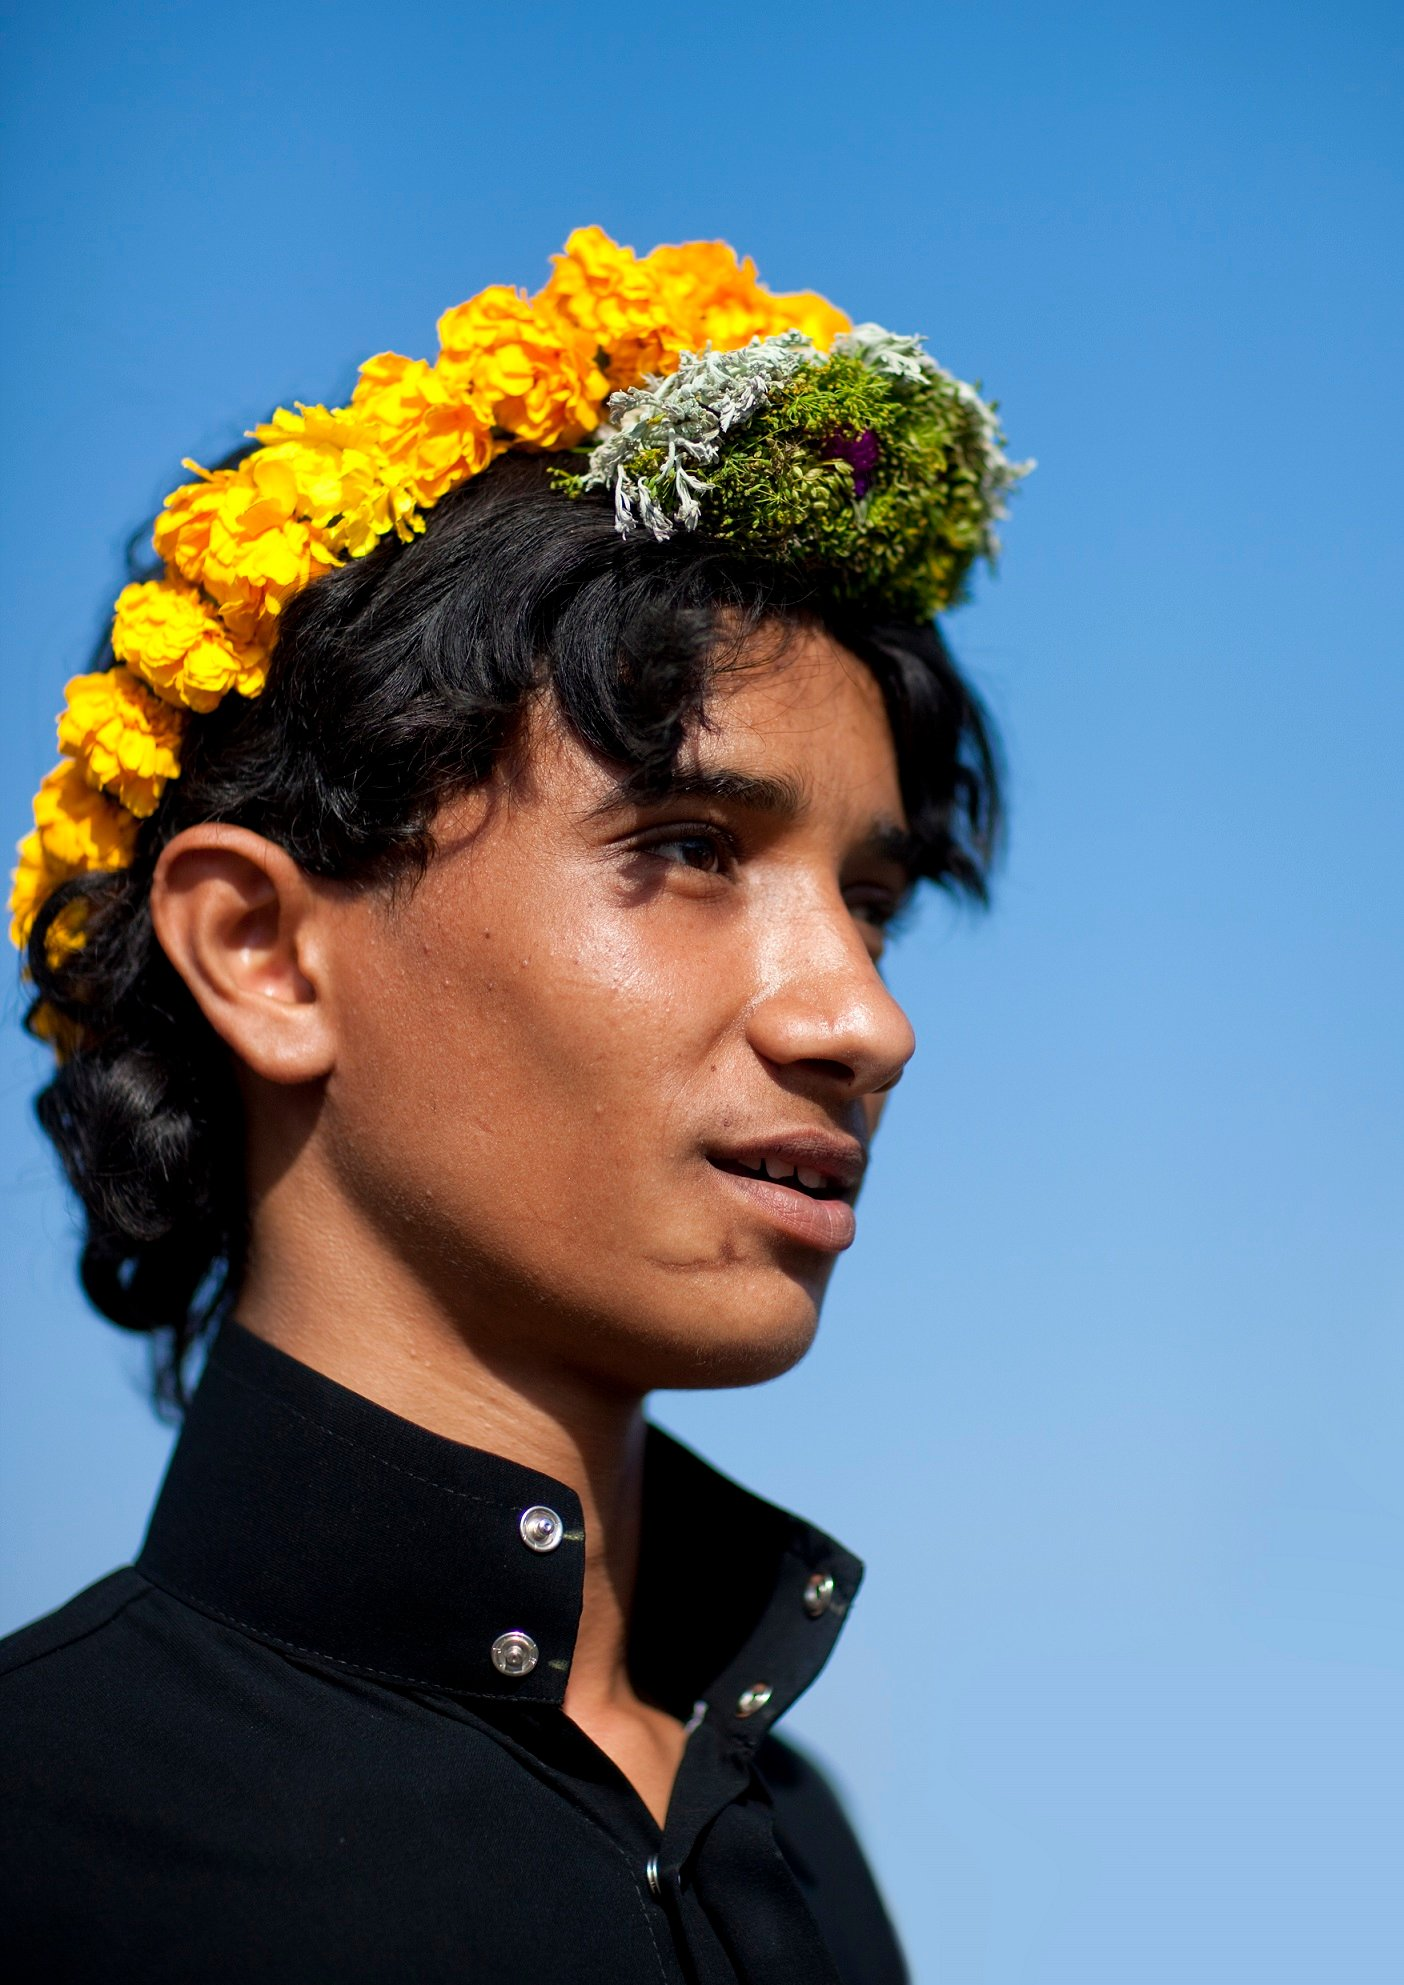 The Flower Men Of Saudi Arabia Middle East Eye